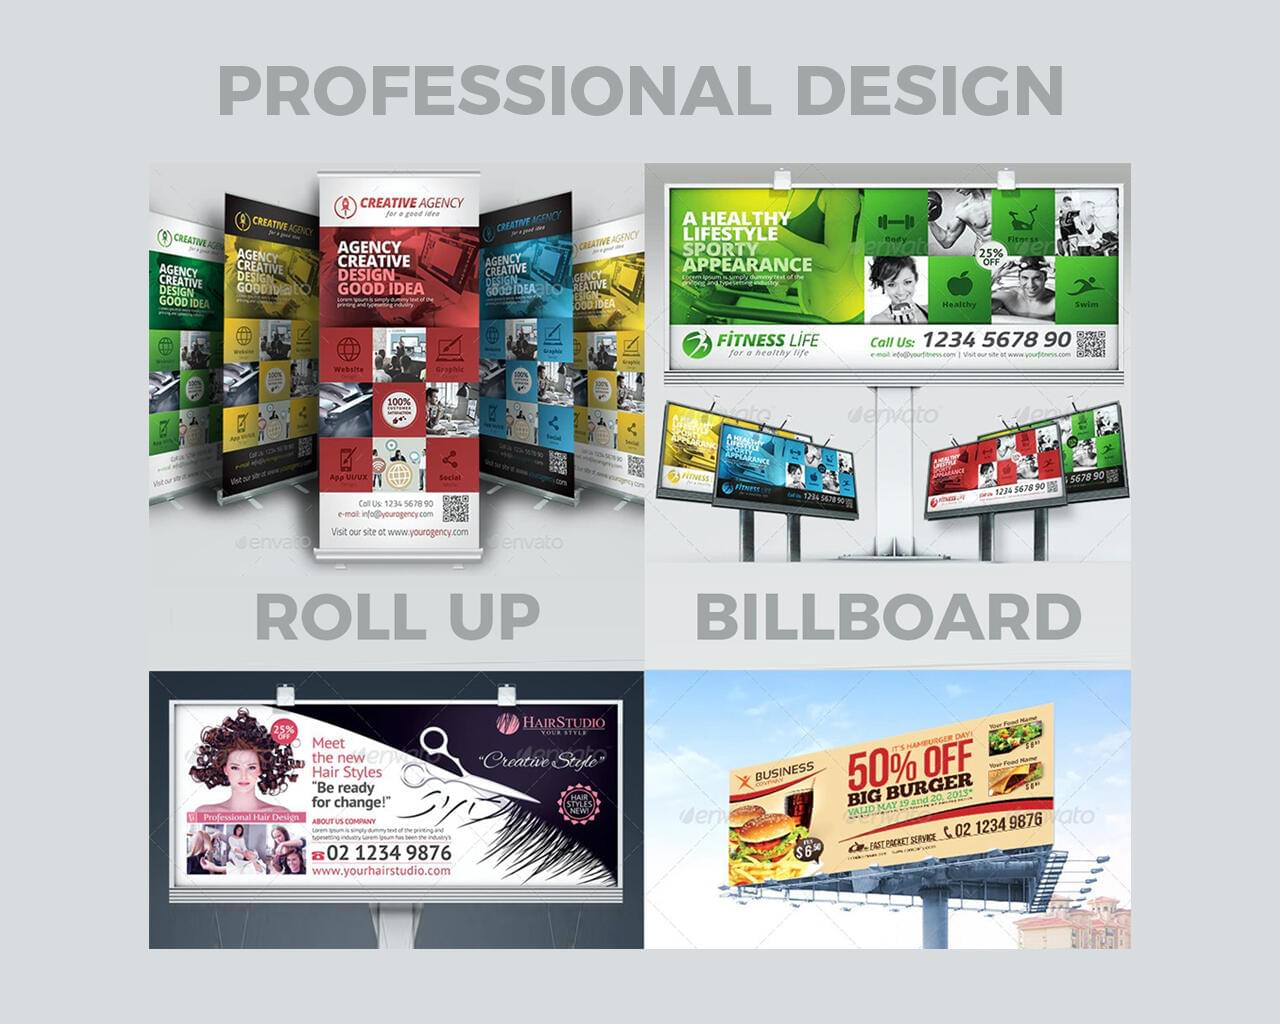 Professional Billboard or Roll Up Banners by hsynkyc - 118171